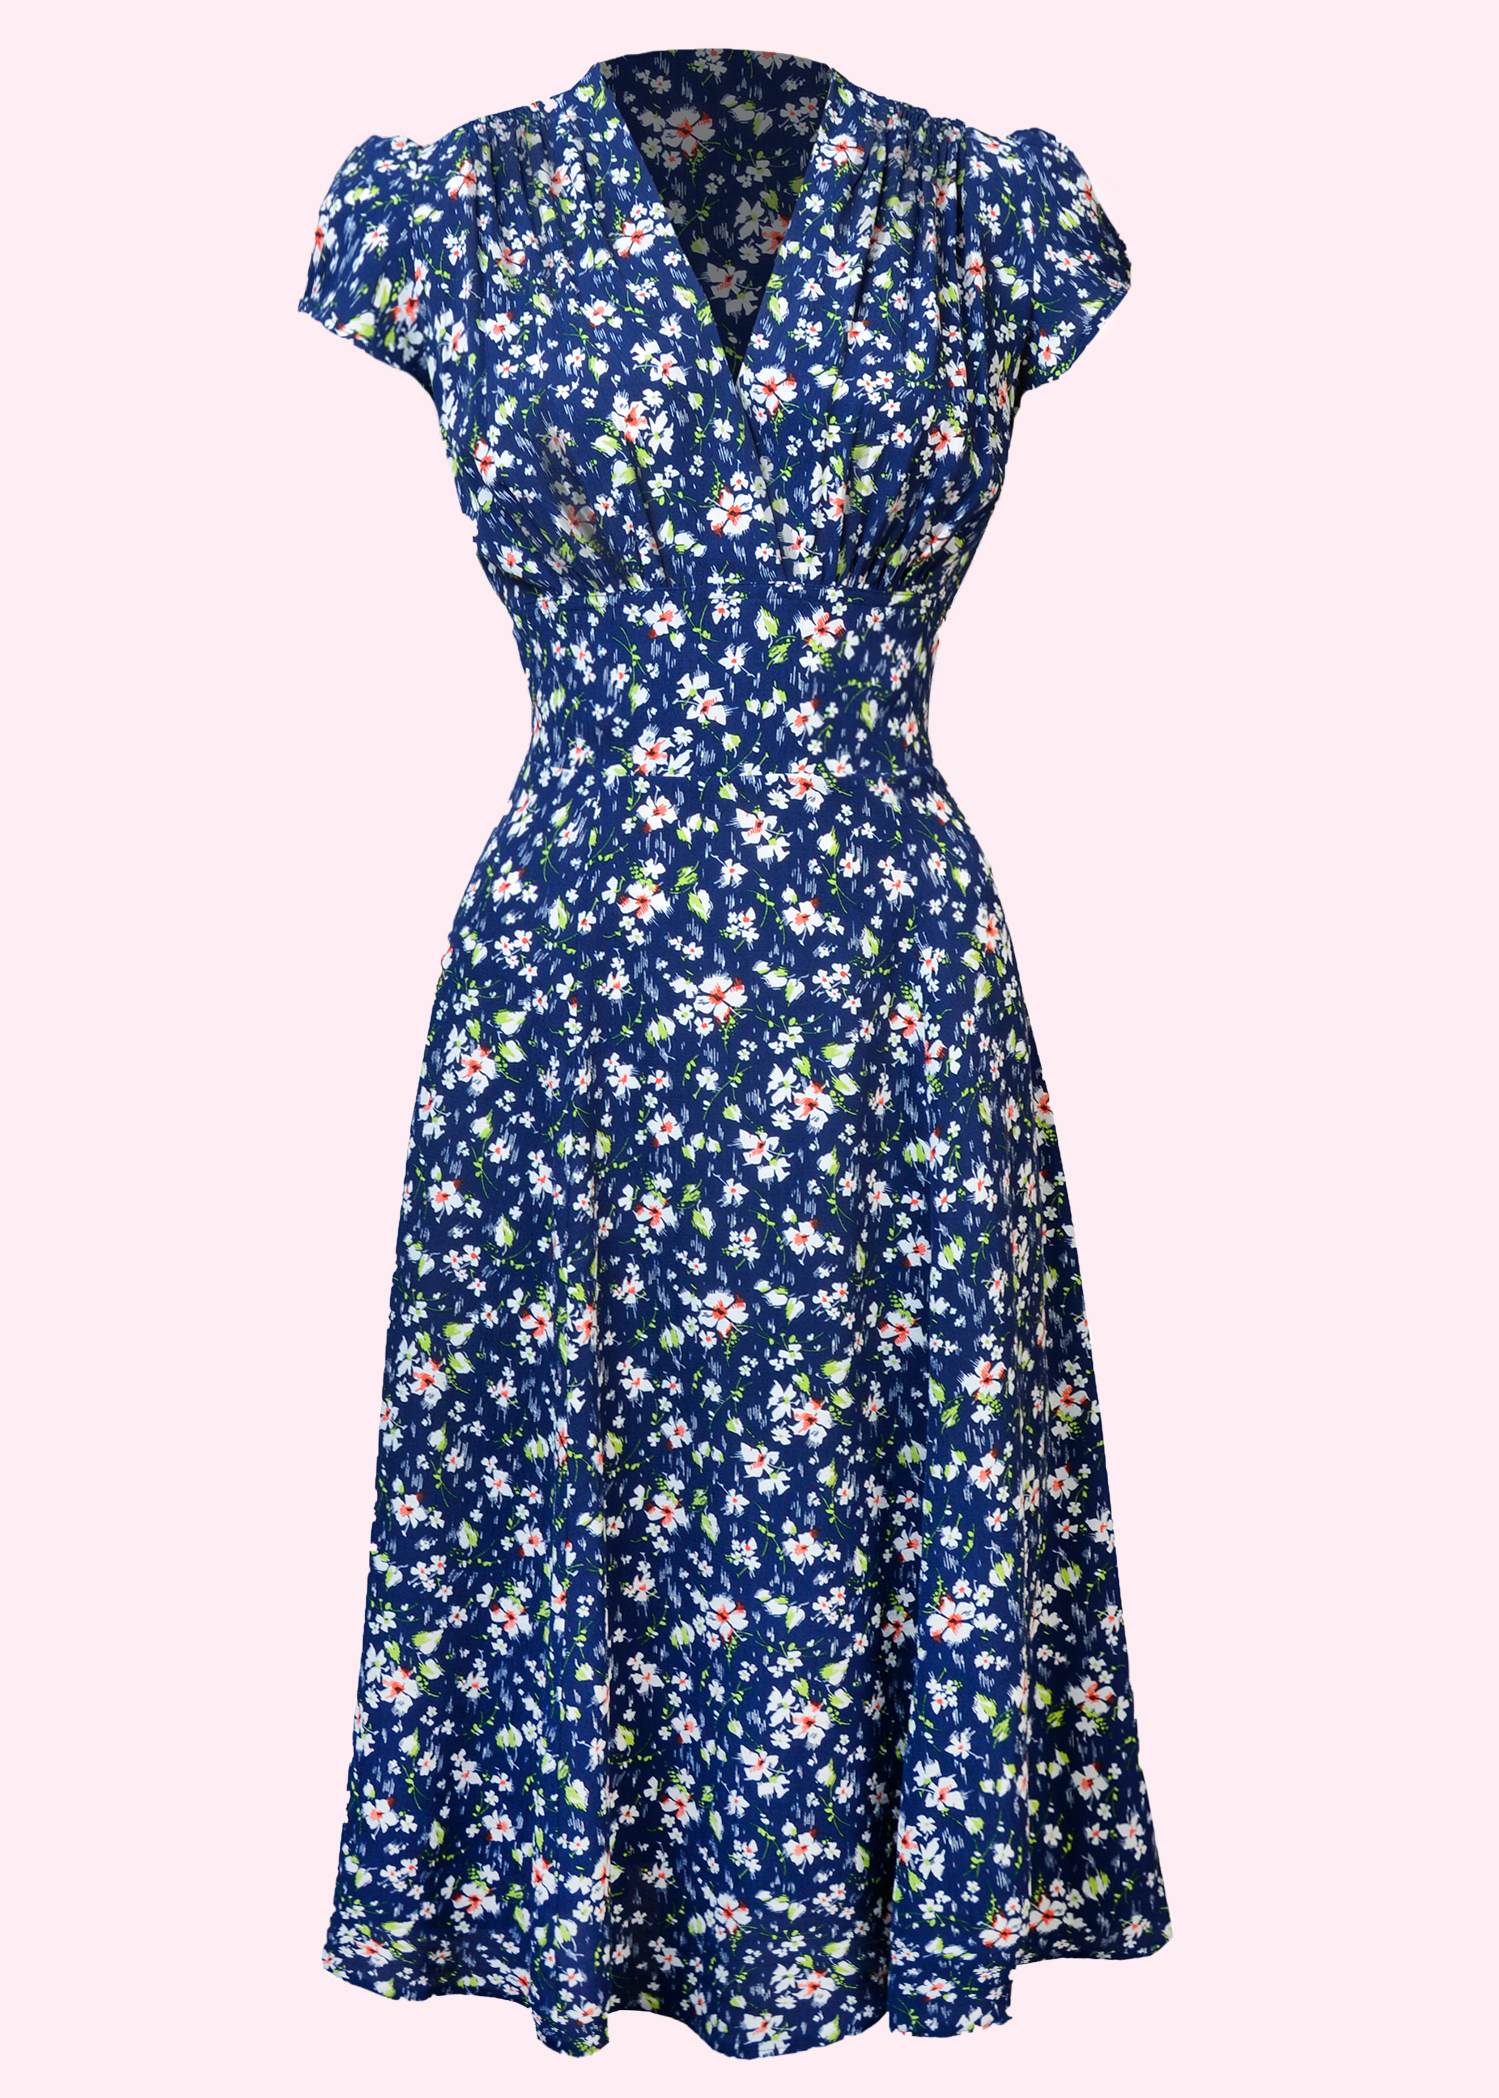 The Ava dress from The house Of Foxy is a classic 40s dress